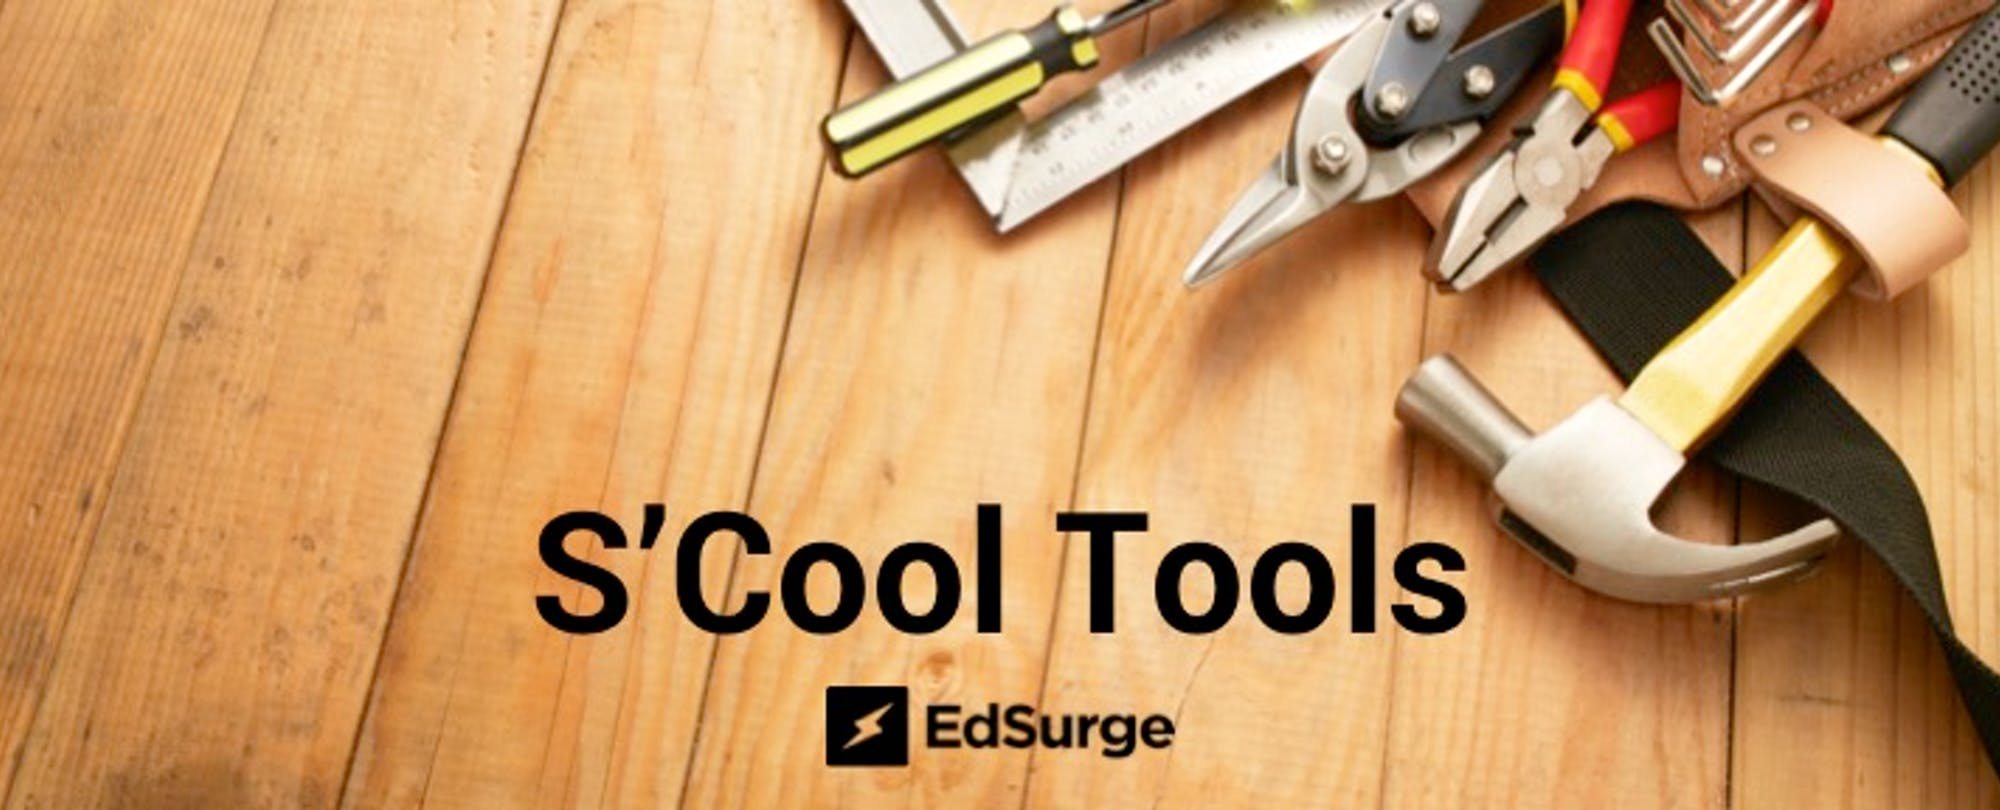 S'Cool Tools, Teacher Voice Edition: CueThink, Kids Discover Online